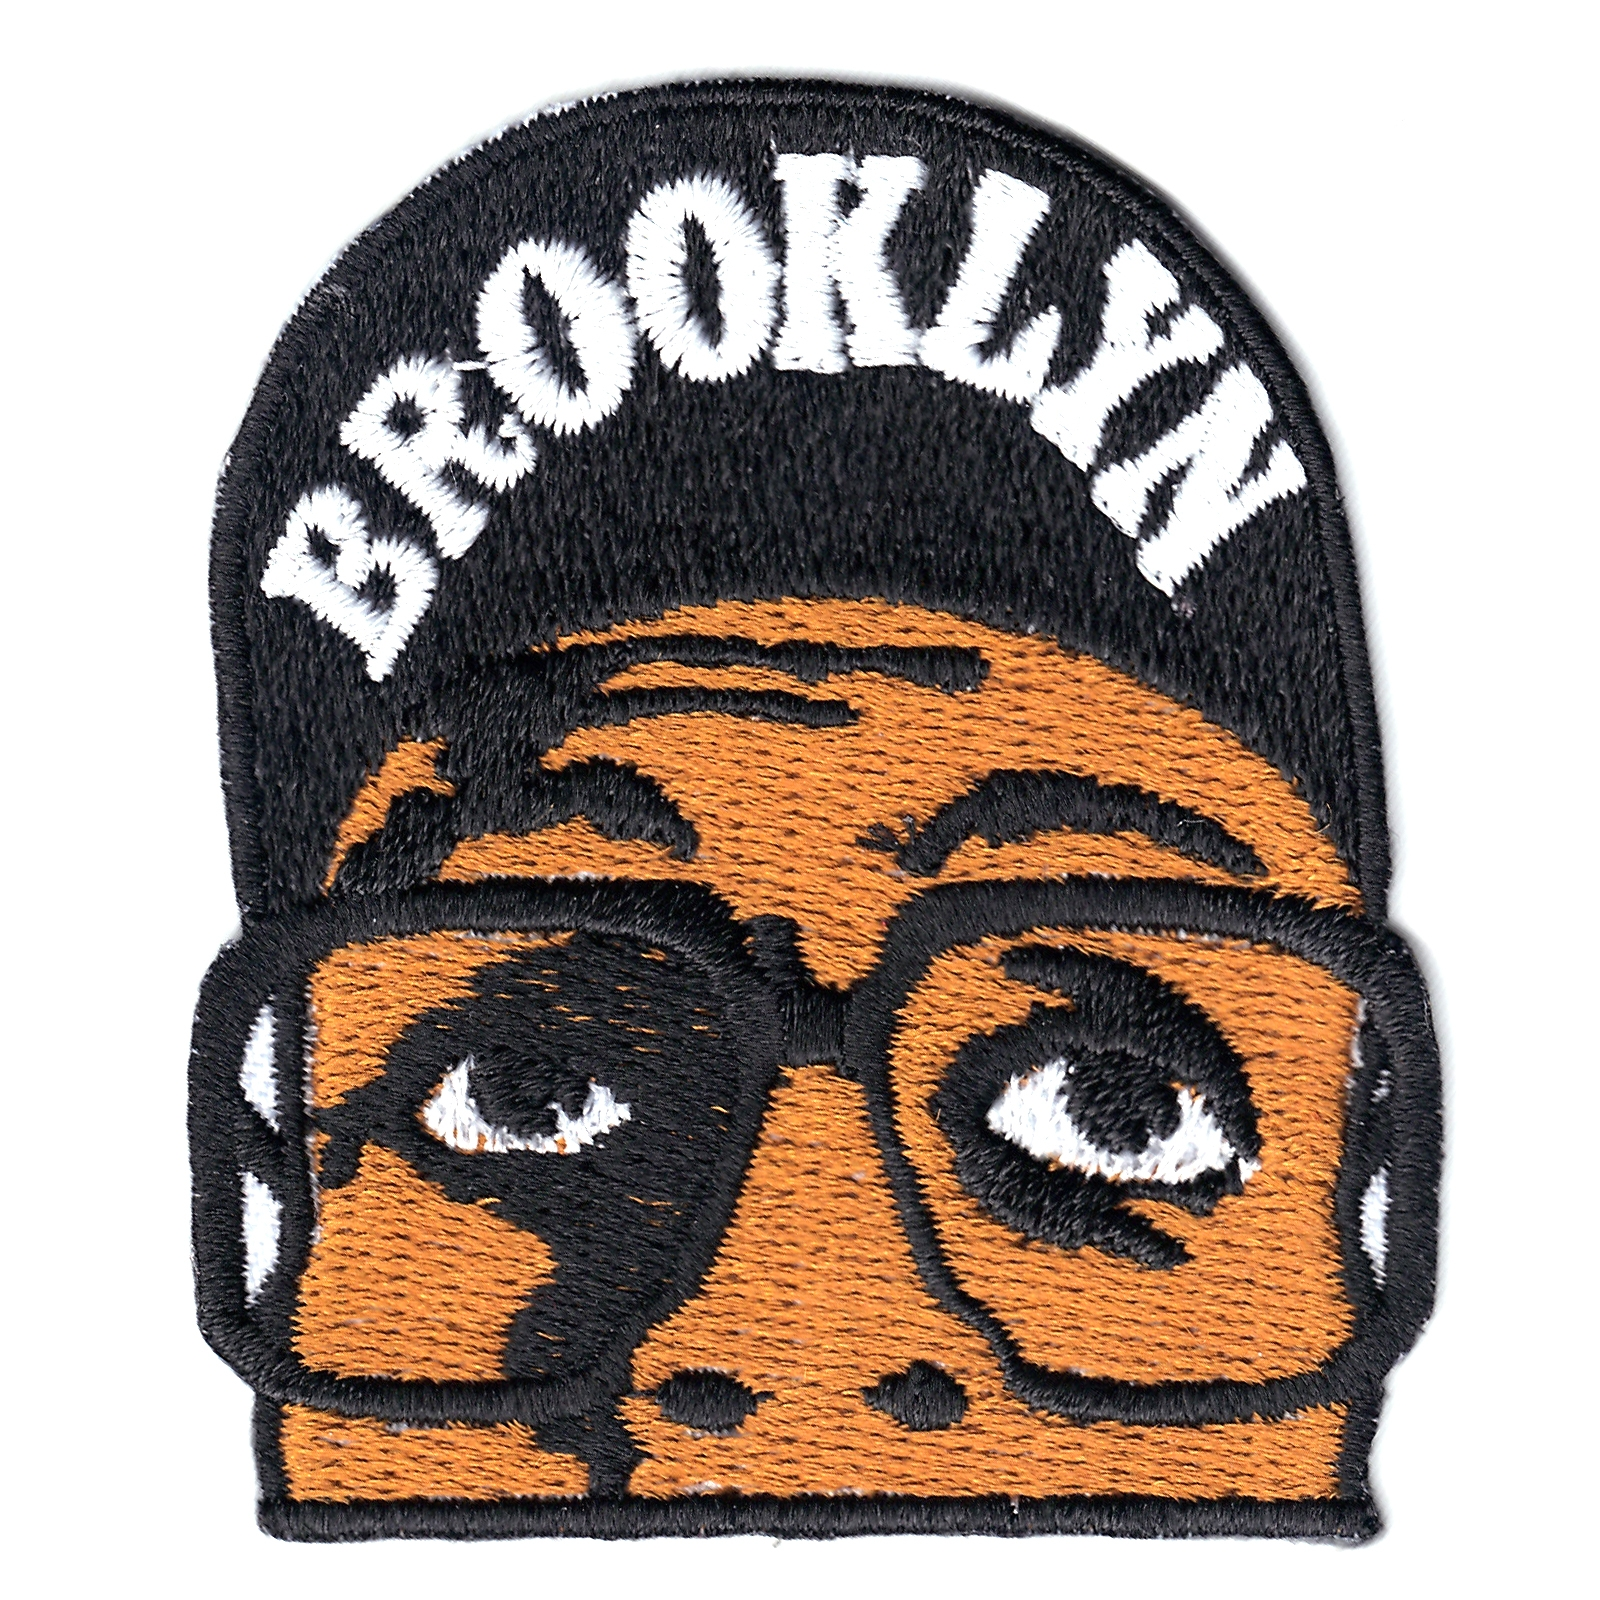 Brooklyn Basketball Player Iron on Patch